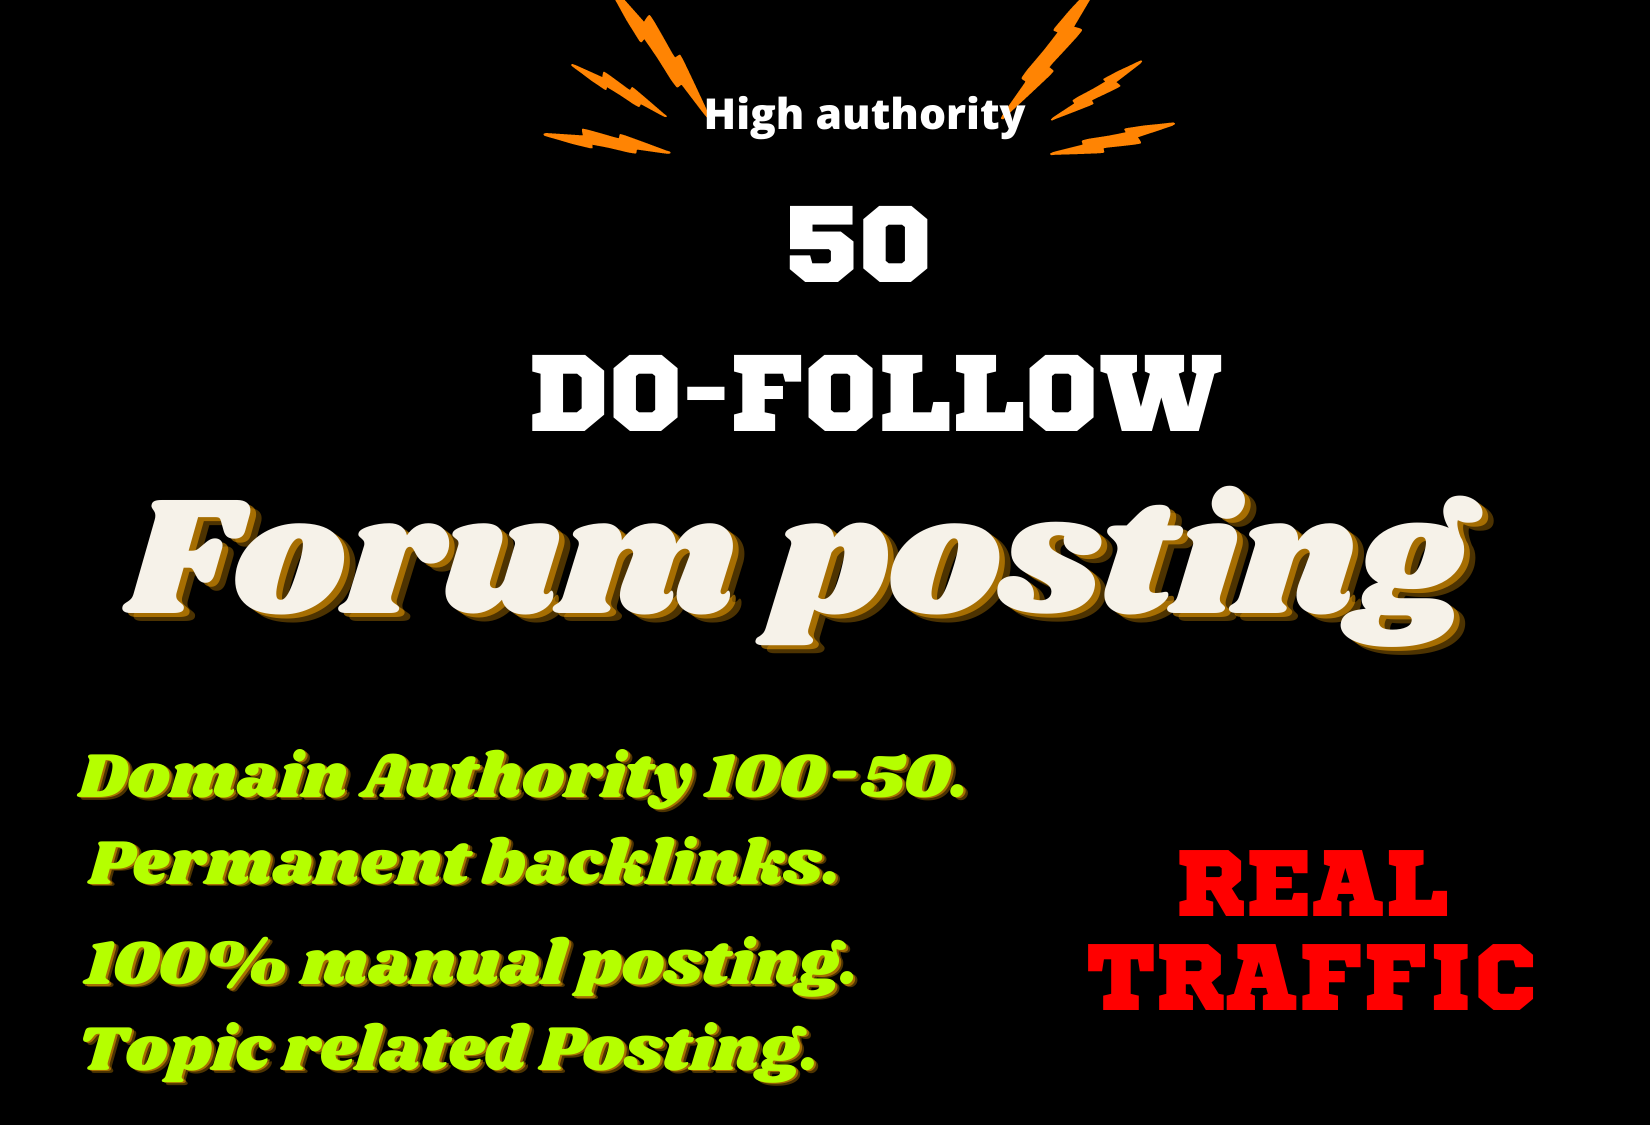 Manually Create 50 High-Authority Topic-Related Do follow Forum Posts.